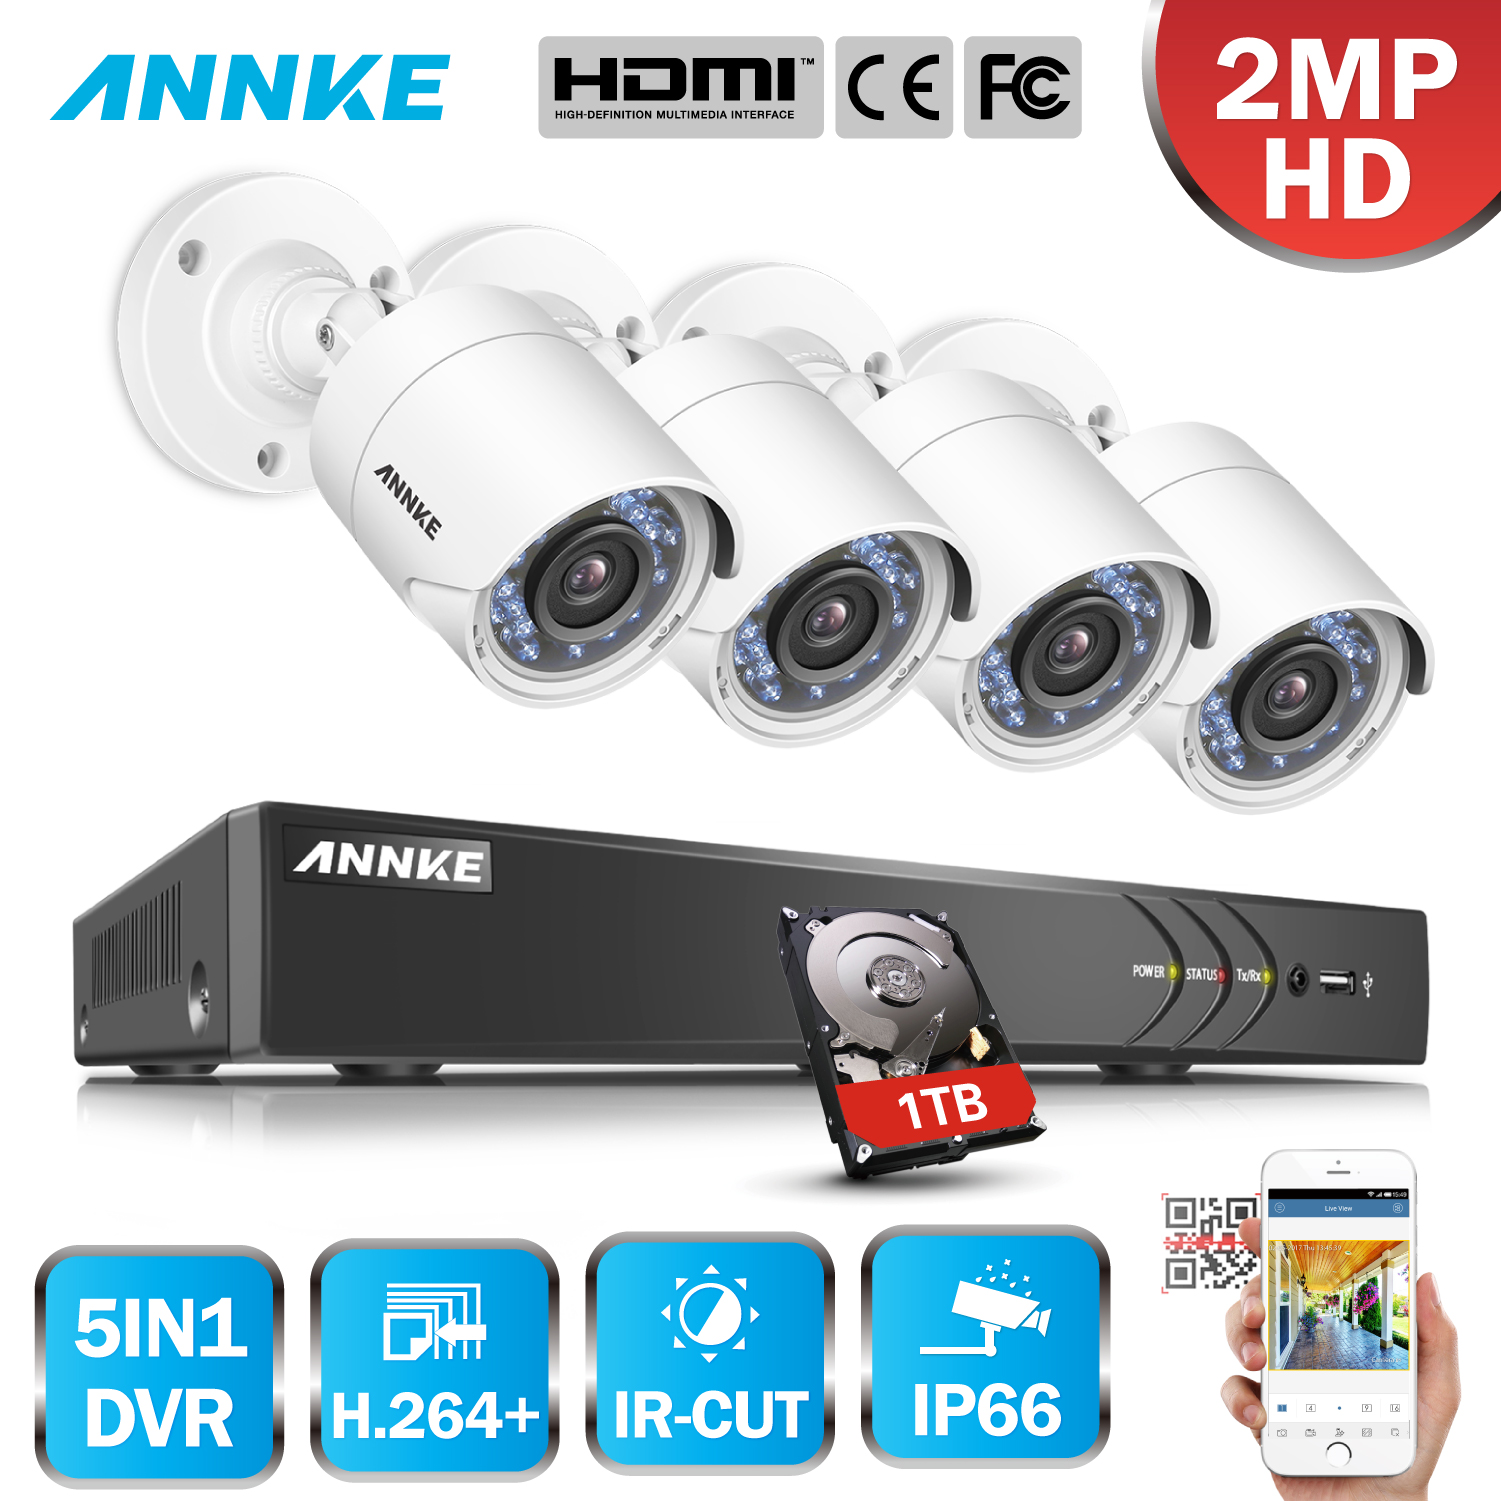 ANNKE 8CH 3MP HD TVI CVI AHD IP 5in1 H.264+ DVR 4pcs 2MP 1080P Weatherproof Camera Smart IR CCTV Security Surveillance System annke 3mp 4ch hd tvi cvi ahd ip 5in1 dvr vca 2mp hd smart ir day night vision bullet cctv camera video security system 3d dnr